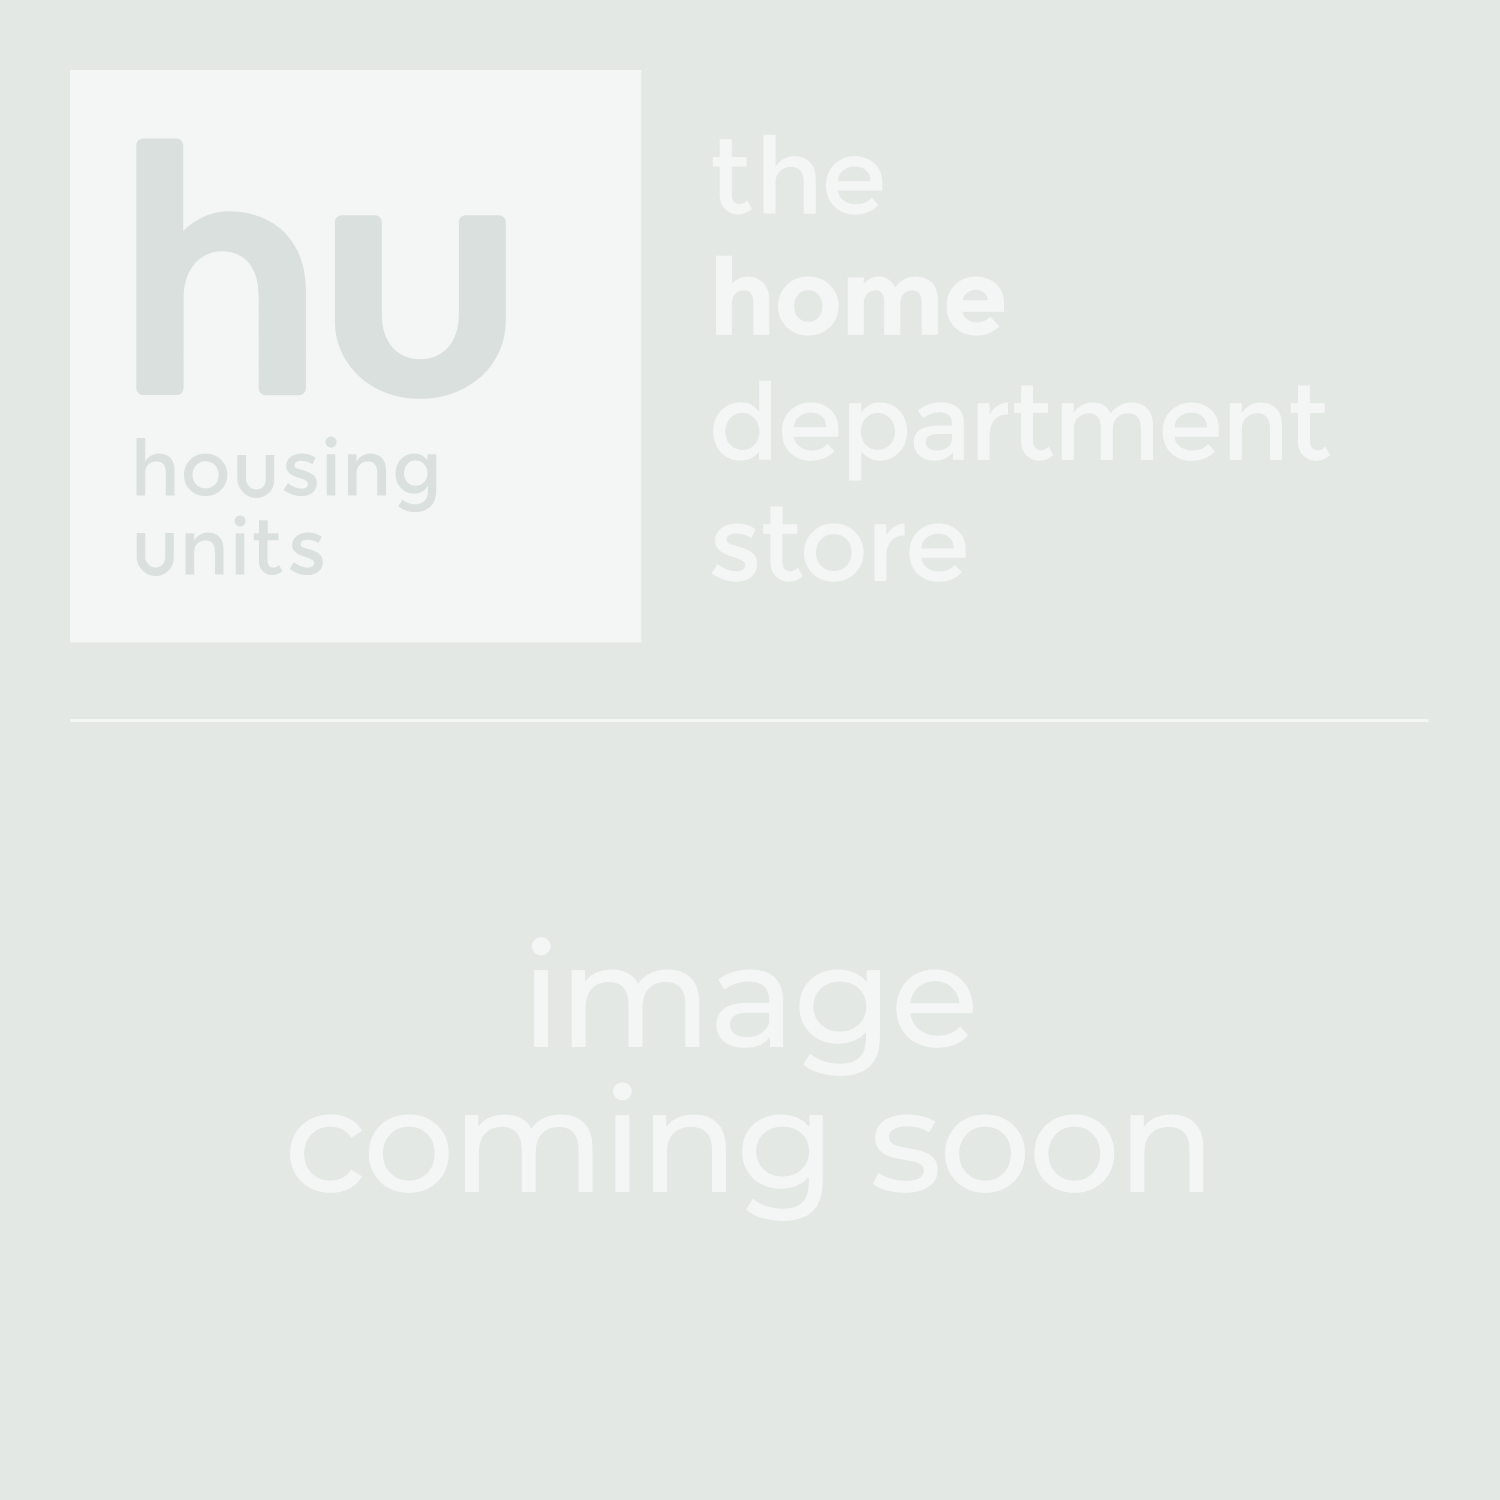 Attractive Housing Units